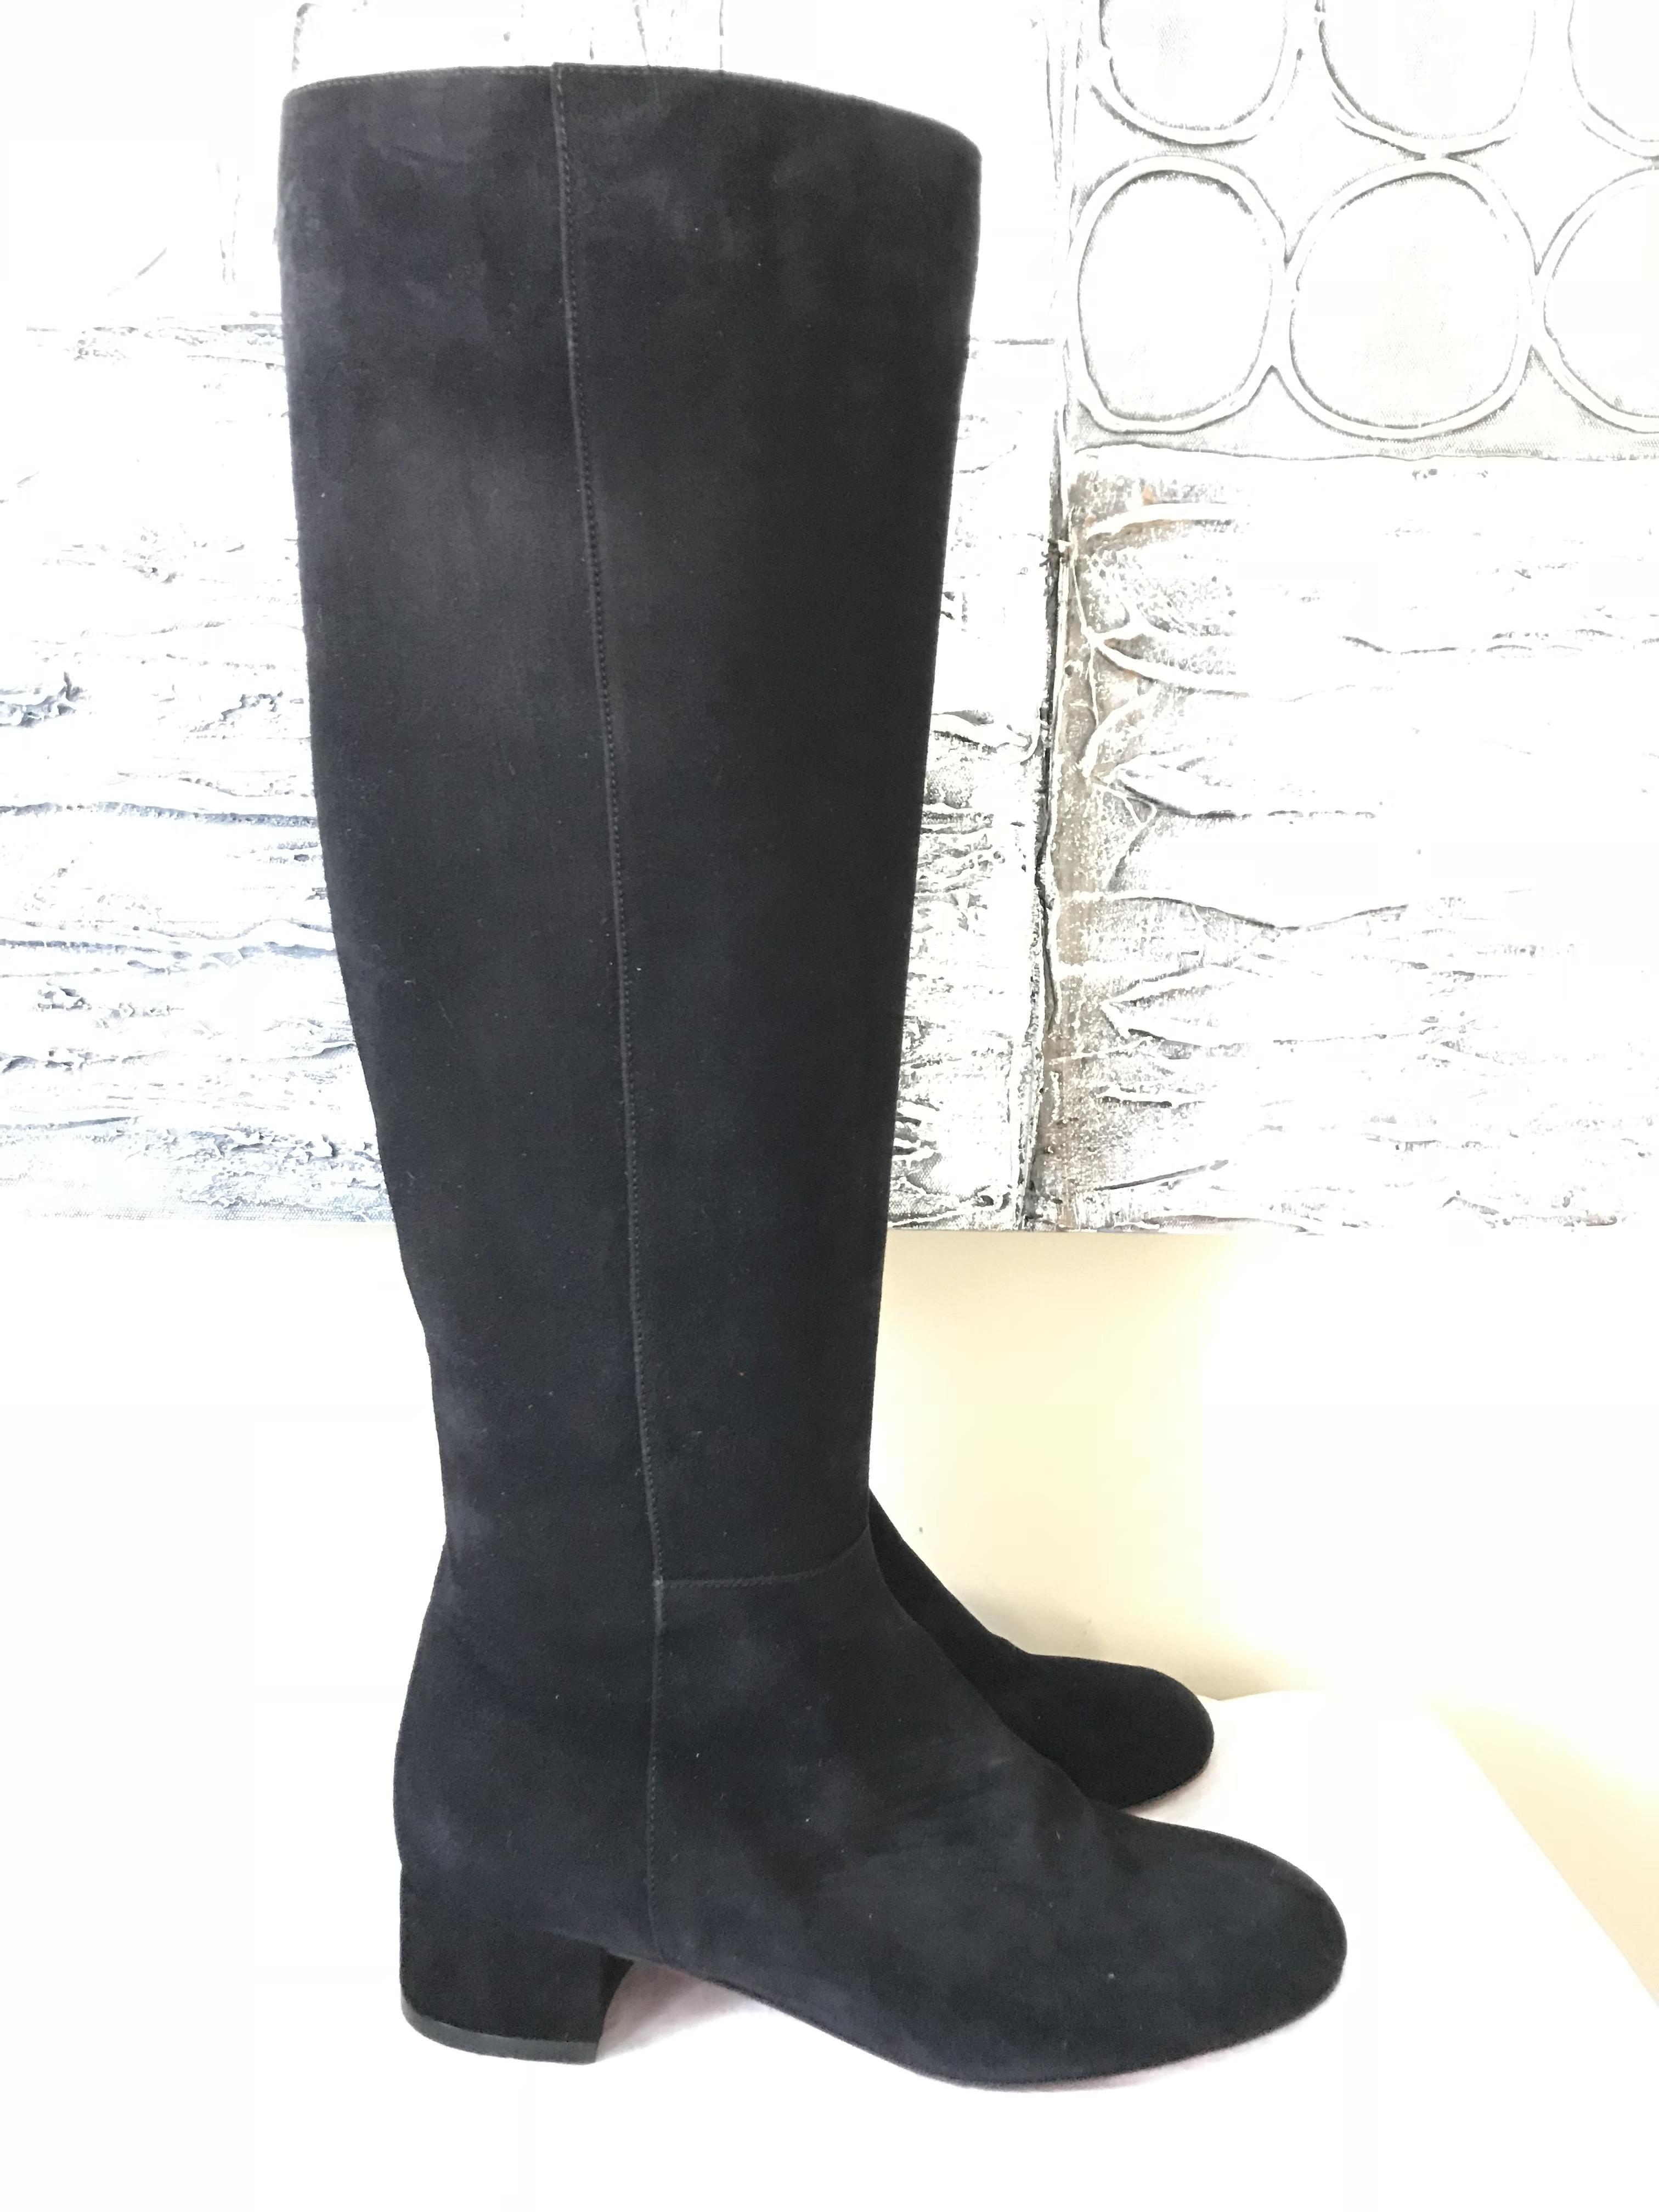 444d9058dd67 ... Christian Louboutin Black Liliboot 30 30 30 Suede Knee High Tall Heels  Boots Booties Size ...